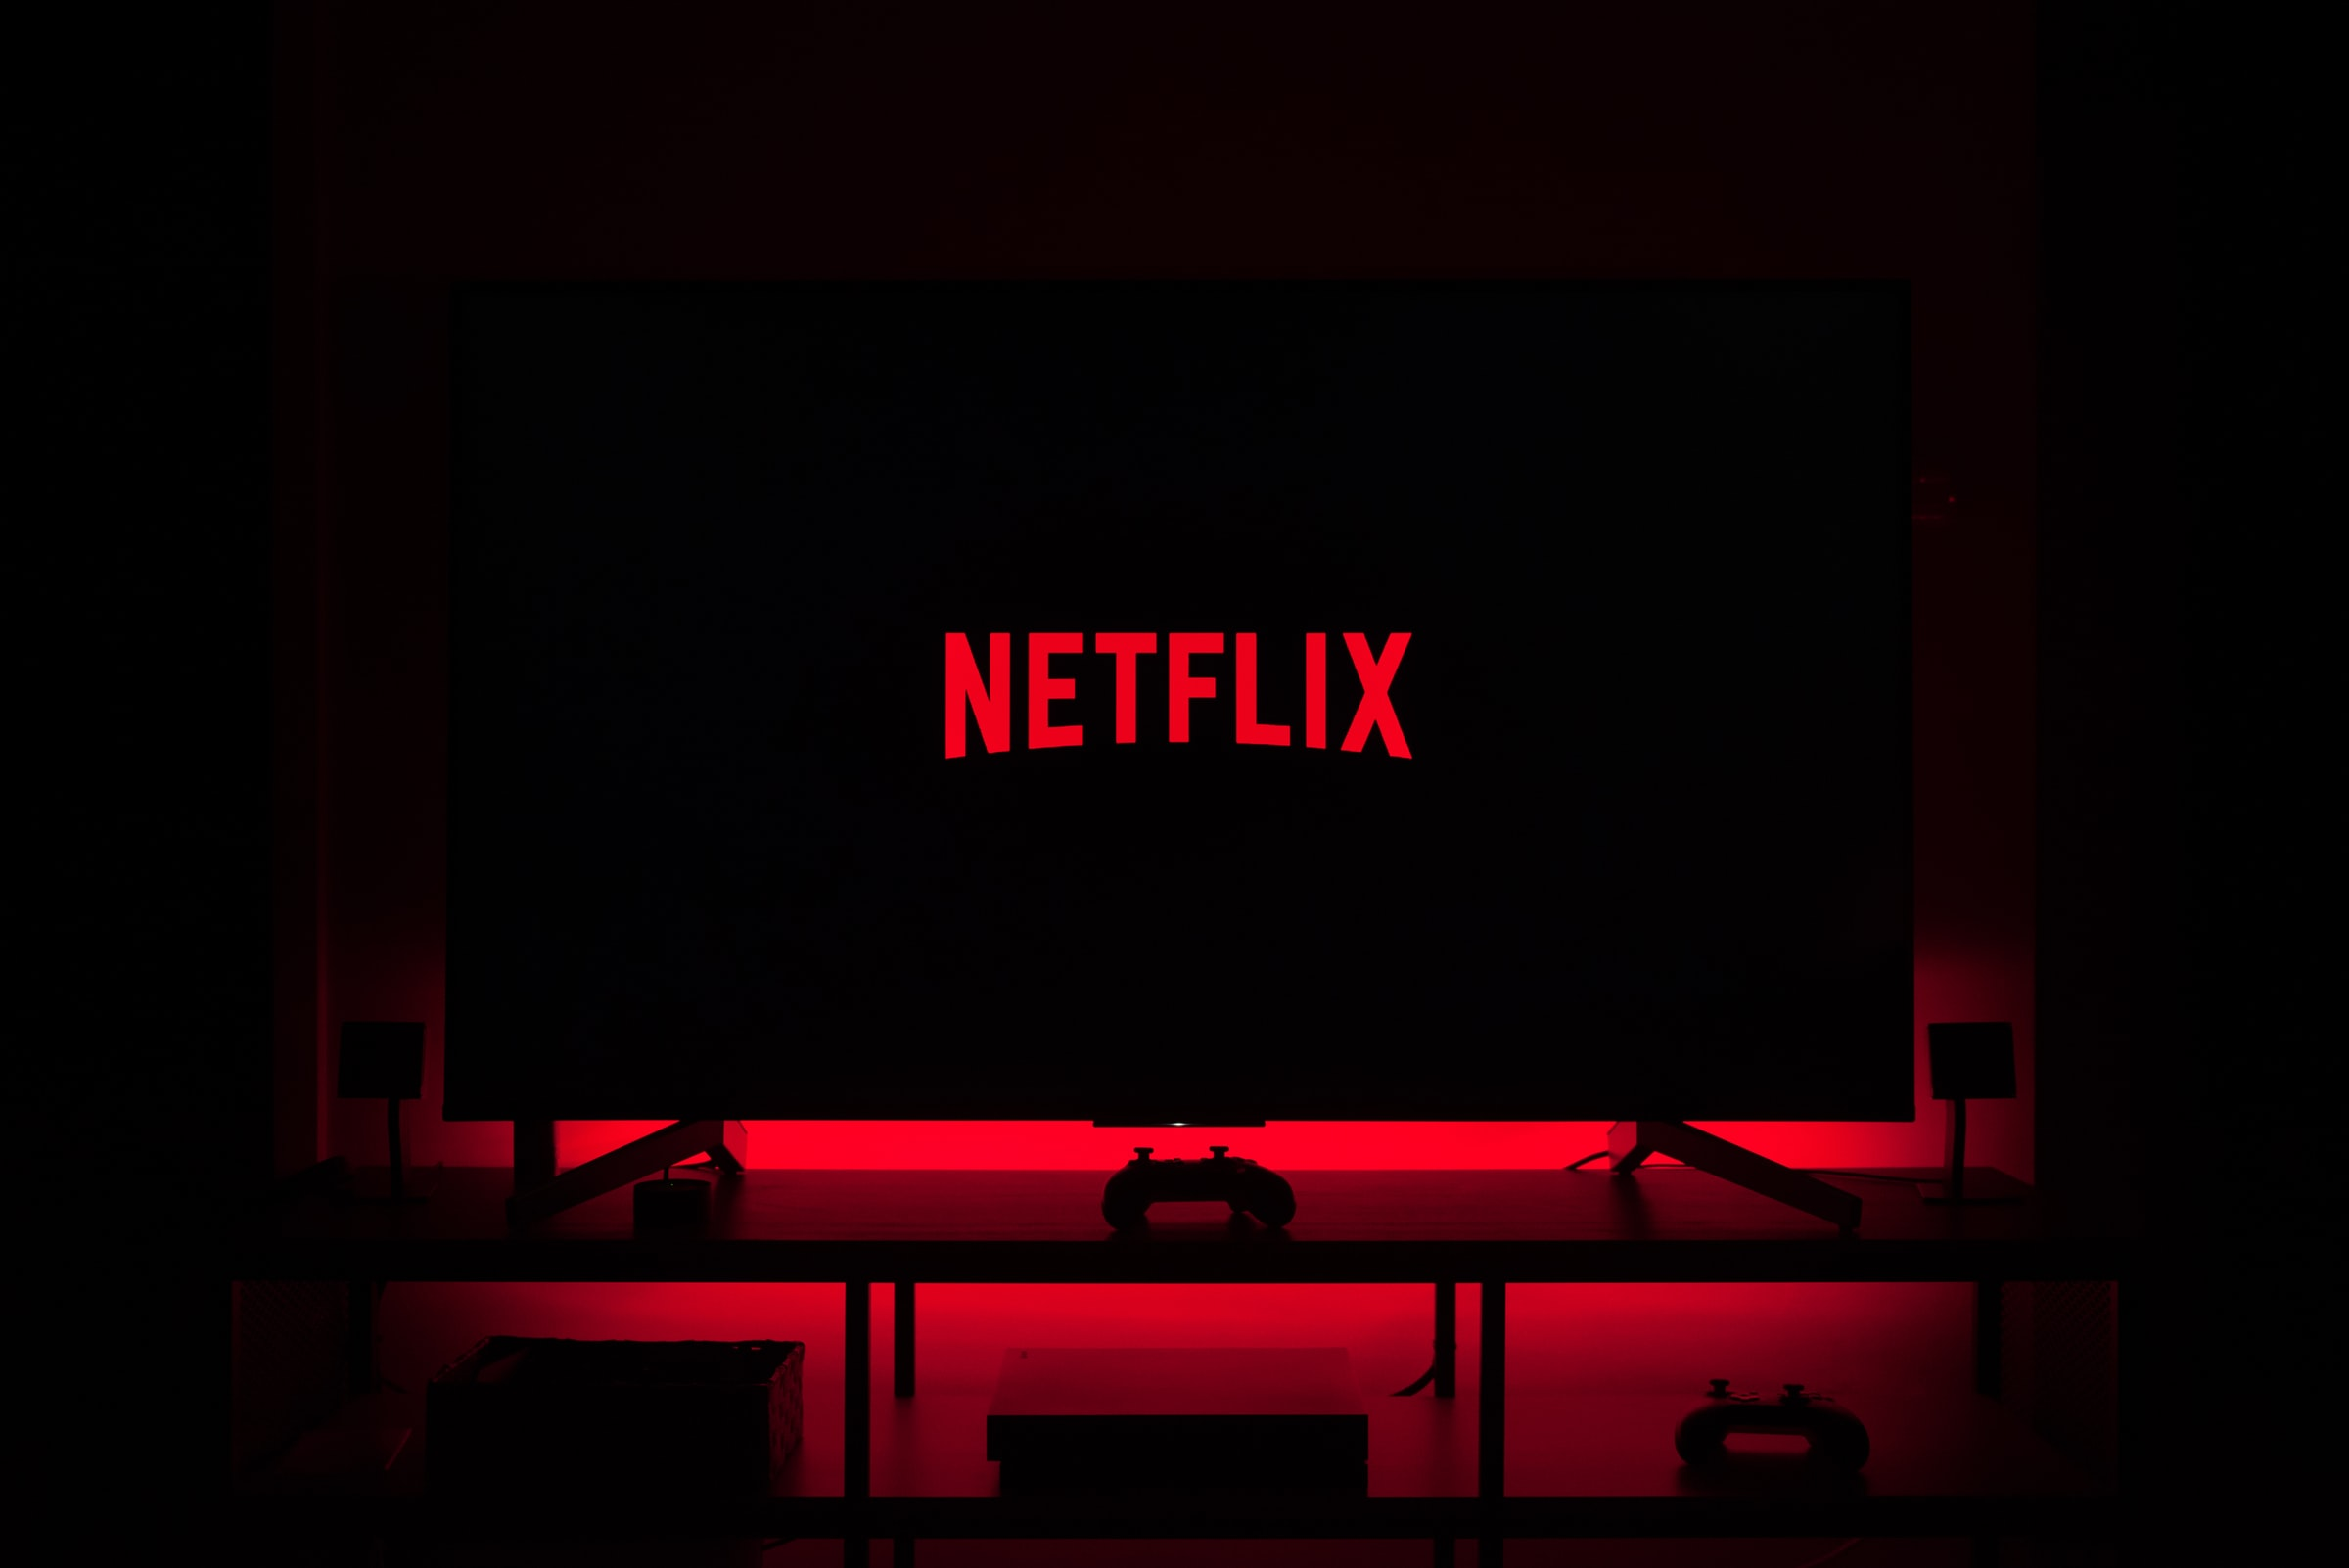 Netflix rolls out new feature